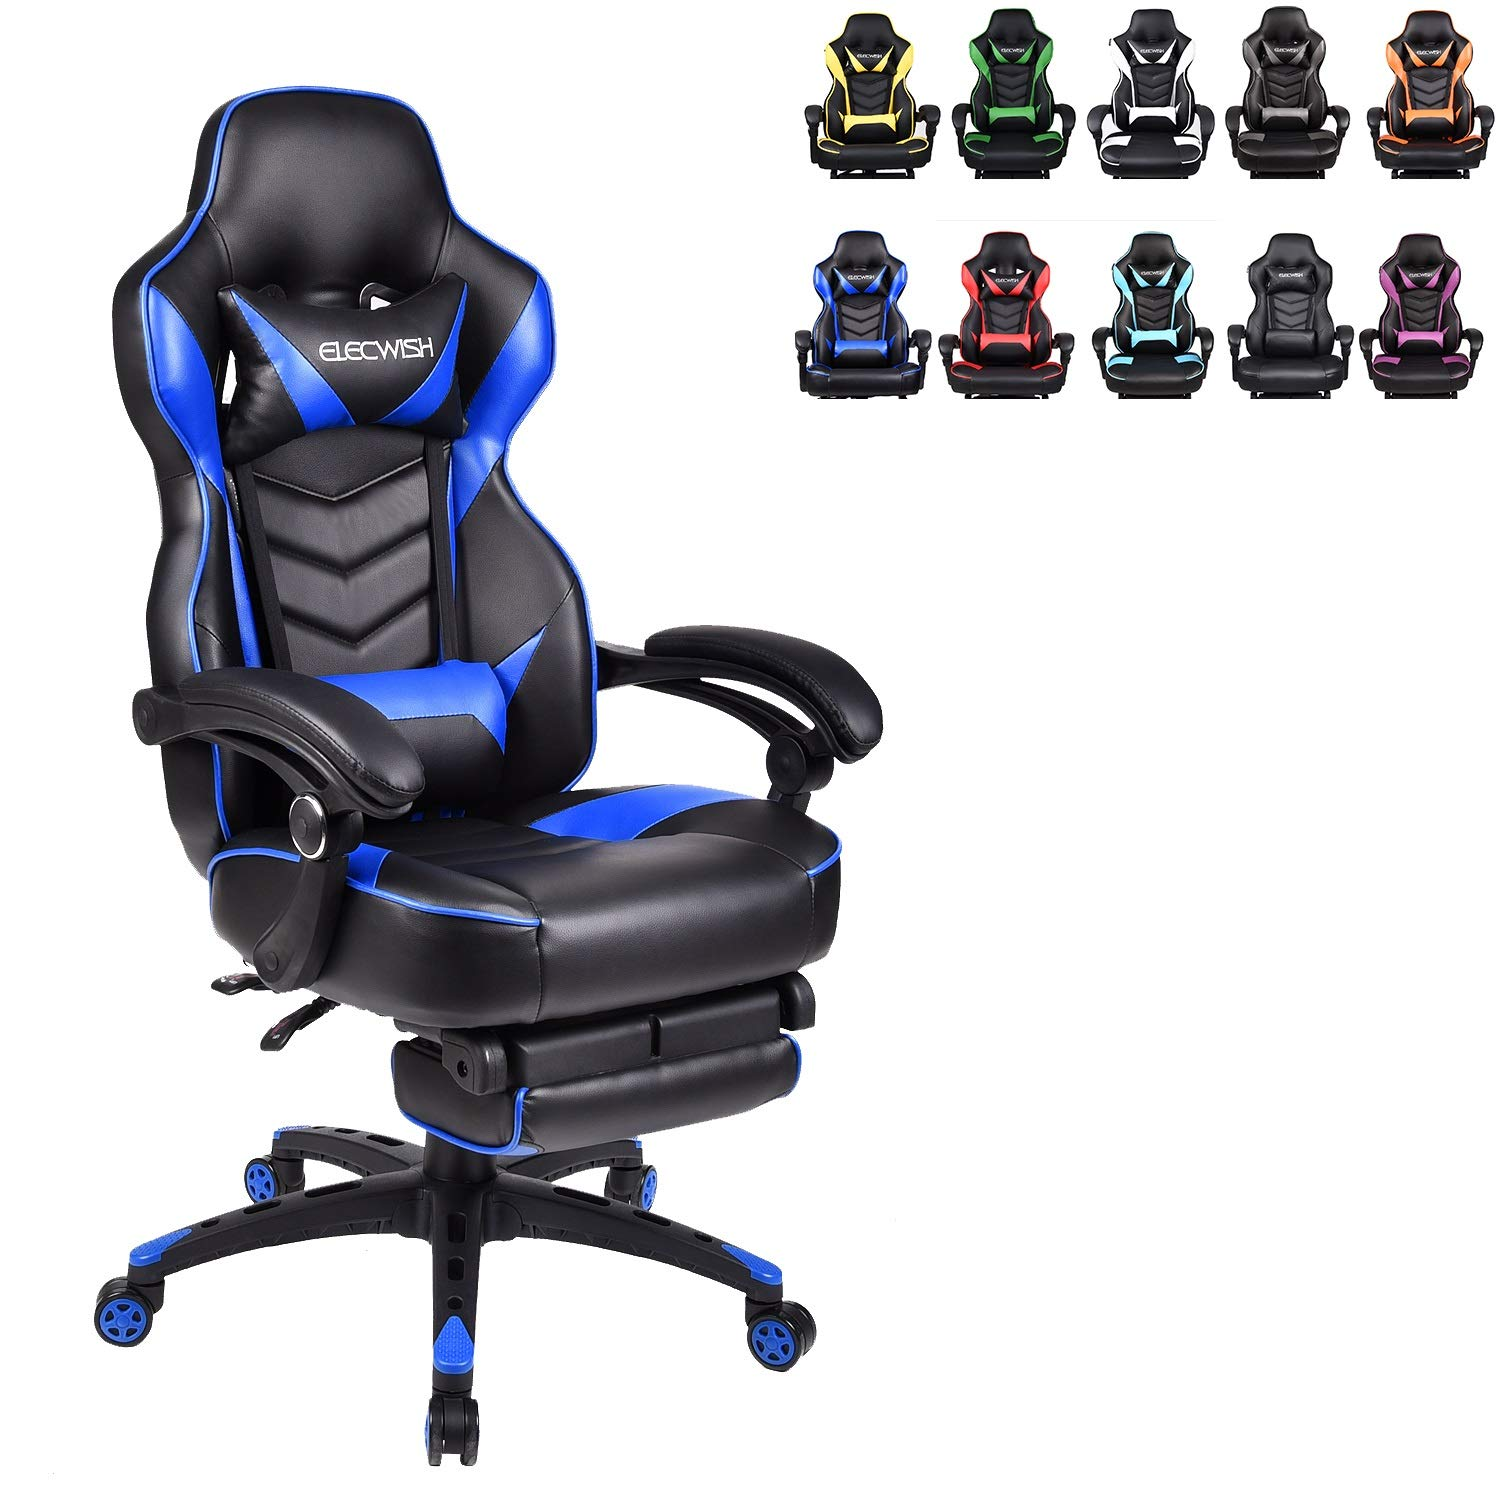 ELECWISH Ergonomic Computer Gaming Chair, PU Leather High Back Office Racing Chairs with Widen Thicken Seat and Retractable Footrest and Lumbar Support, Large, Blue by ELECWISH